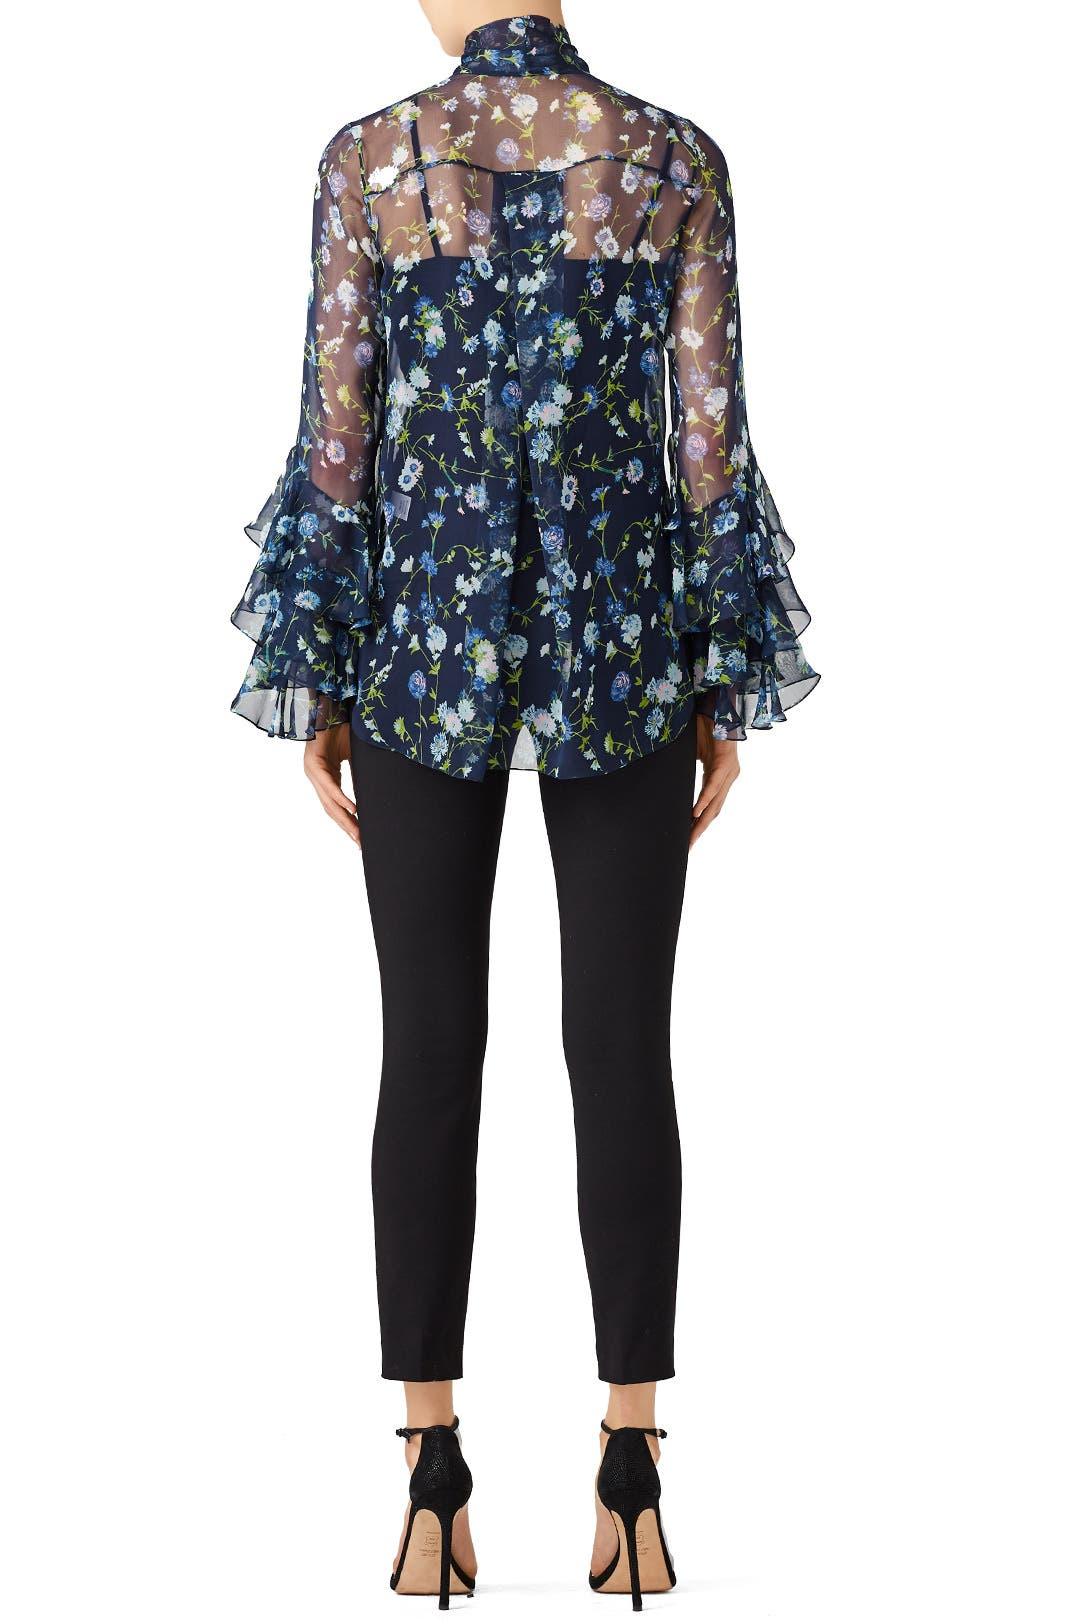 412557fe348b78 Sheer Floral Tie Neck Blouse by Prabal Gurung for  185